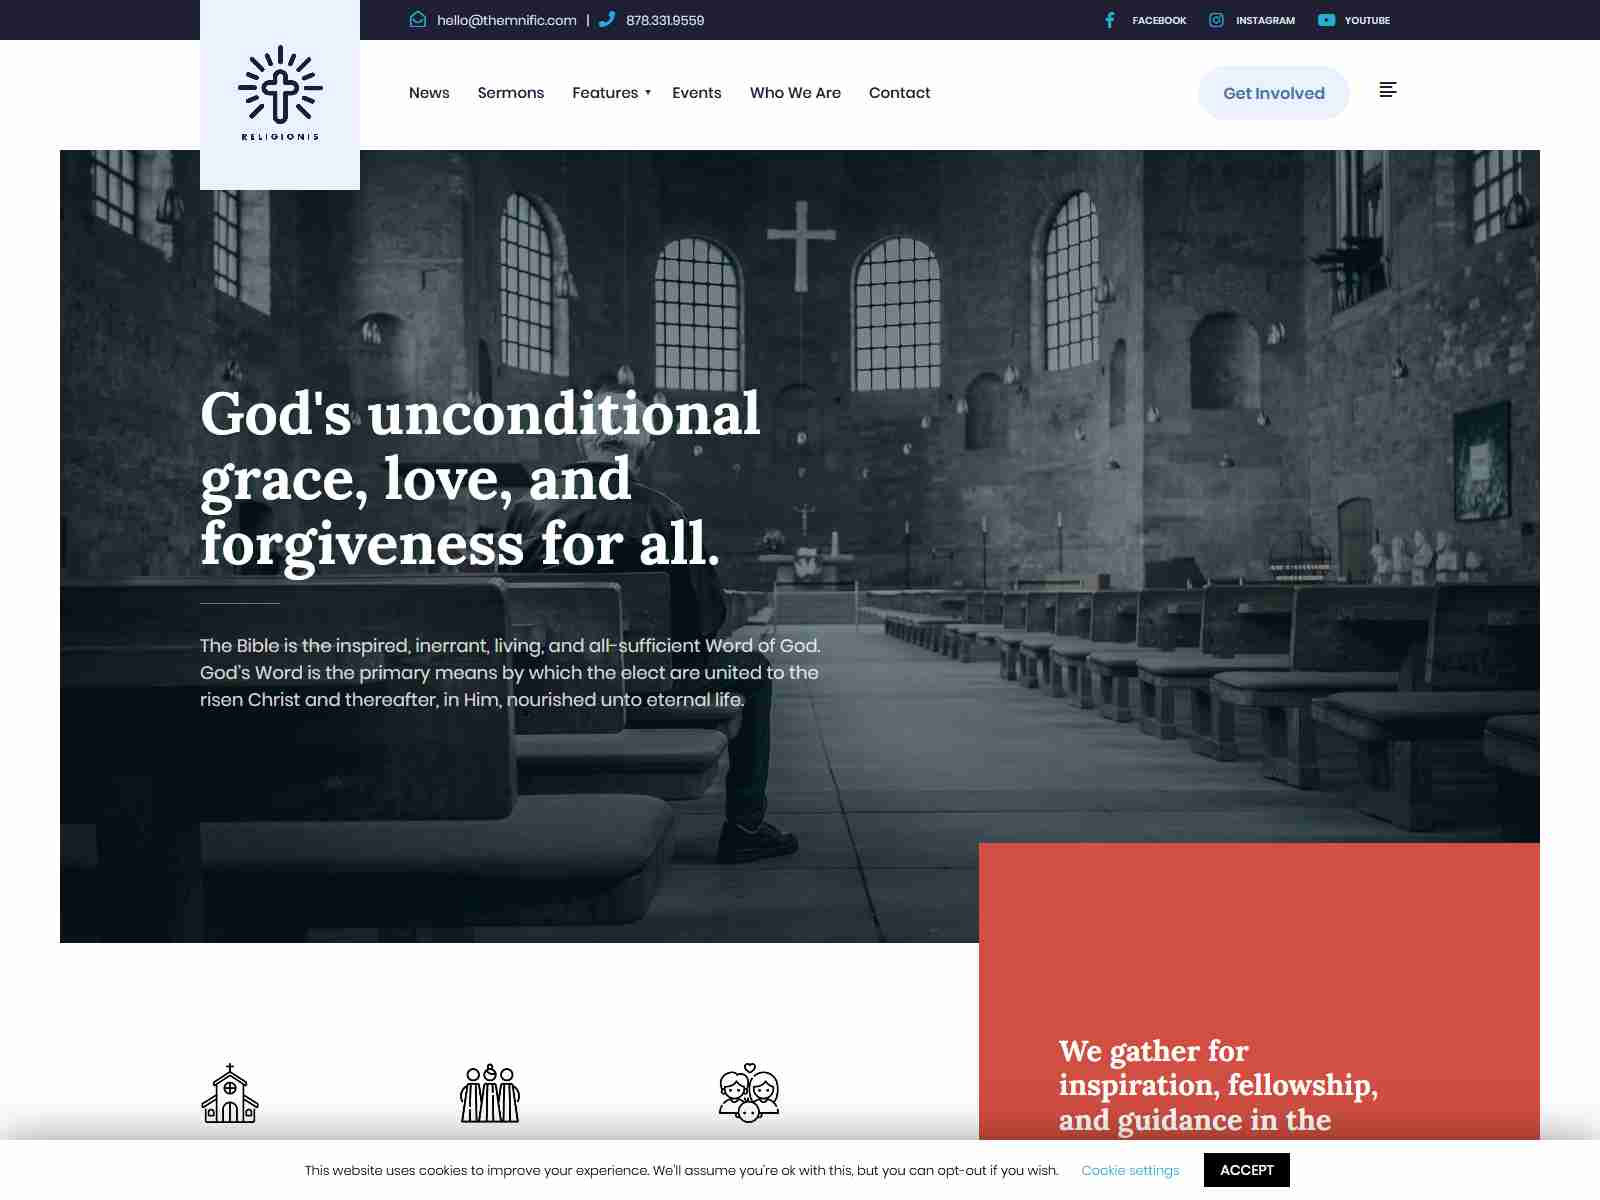 Religionis - Church WordPress Theme fundraising WordPress theme